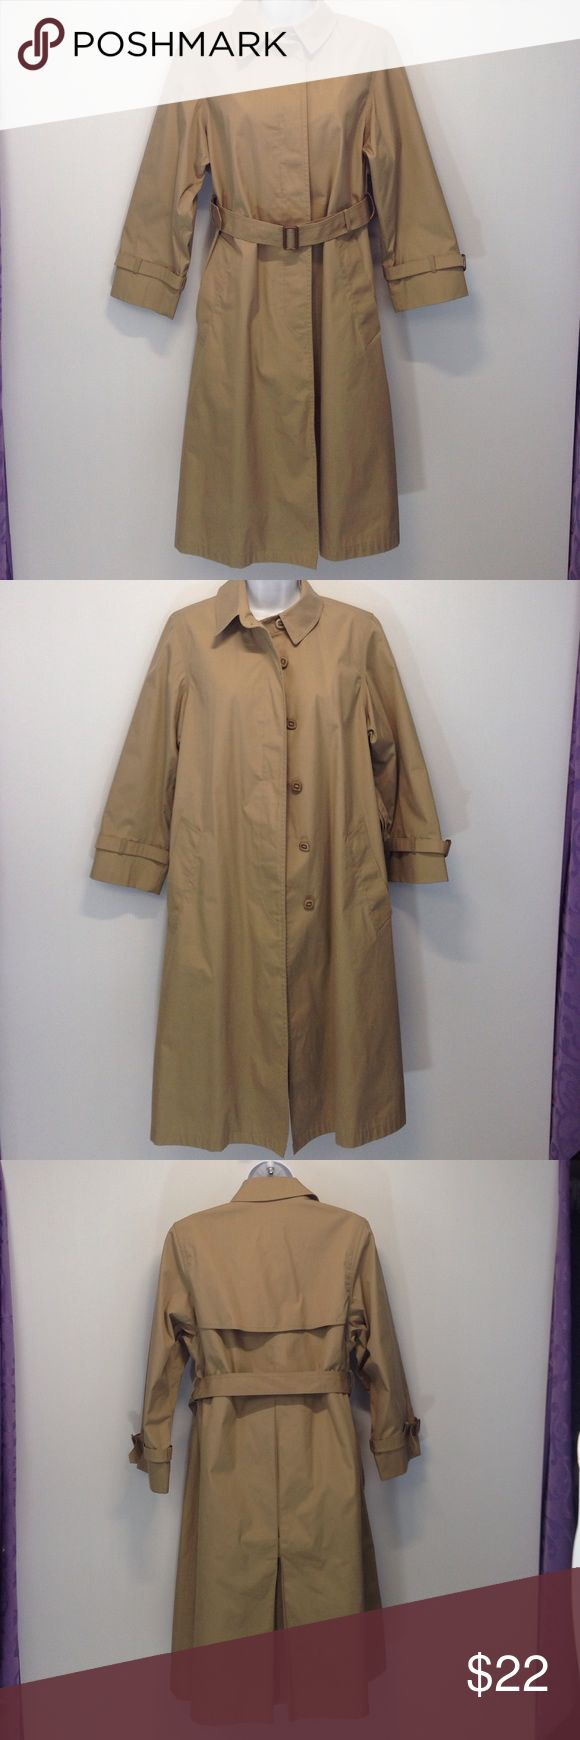 Botony 500 Retro Men's Adjustable Trench Coat NWOT This a men's Trench Coat that is in pristine condition. It has a multitude of adjustable areas  such as the sleeves, waist, and tail/skirt. It doesn't have a size listed but I would estimate that is is a small to medium. It measures 42 inches shoulder to hem and the sleeves are 22 inches long. Please let me know if you have questions. Botony 500 Jackets & Coats Trench Coats